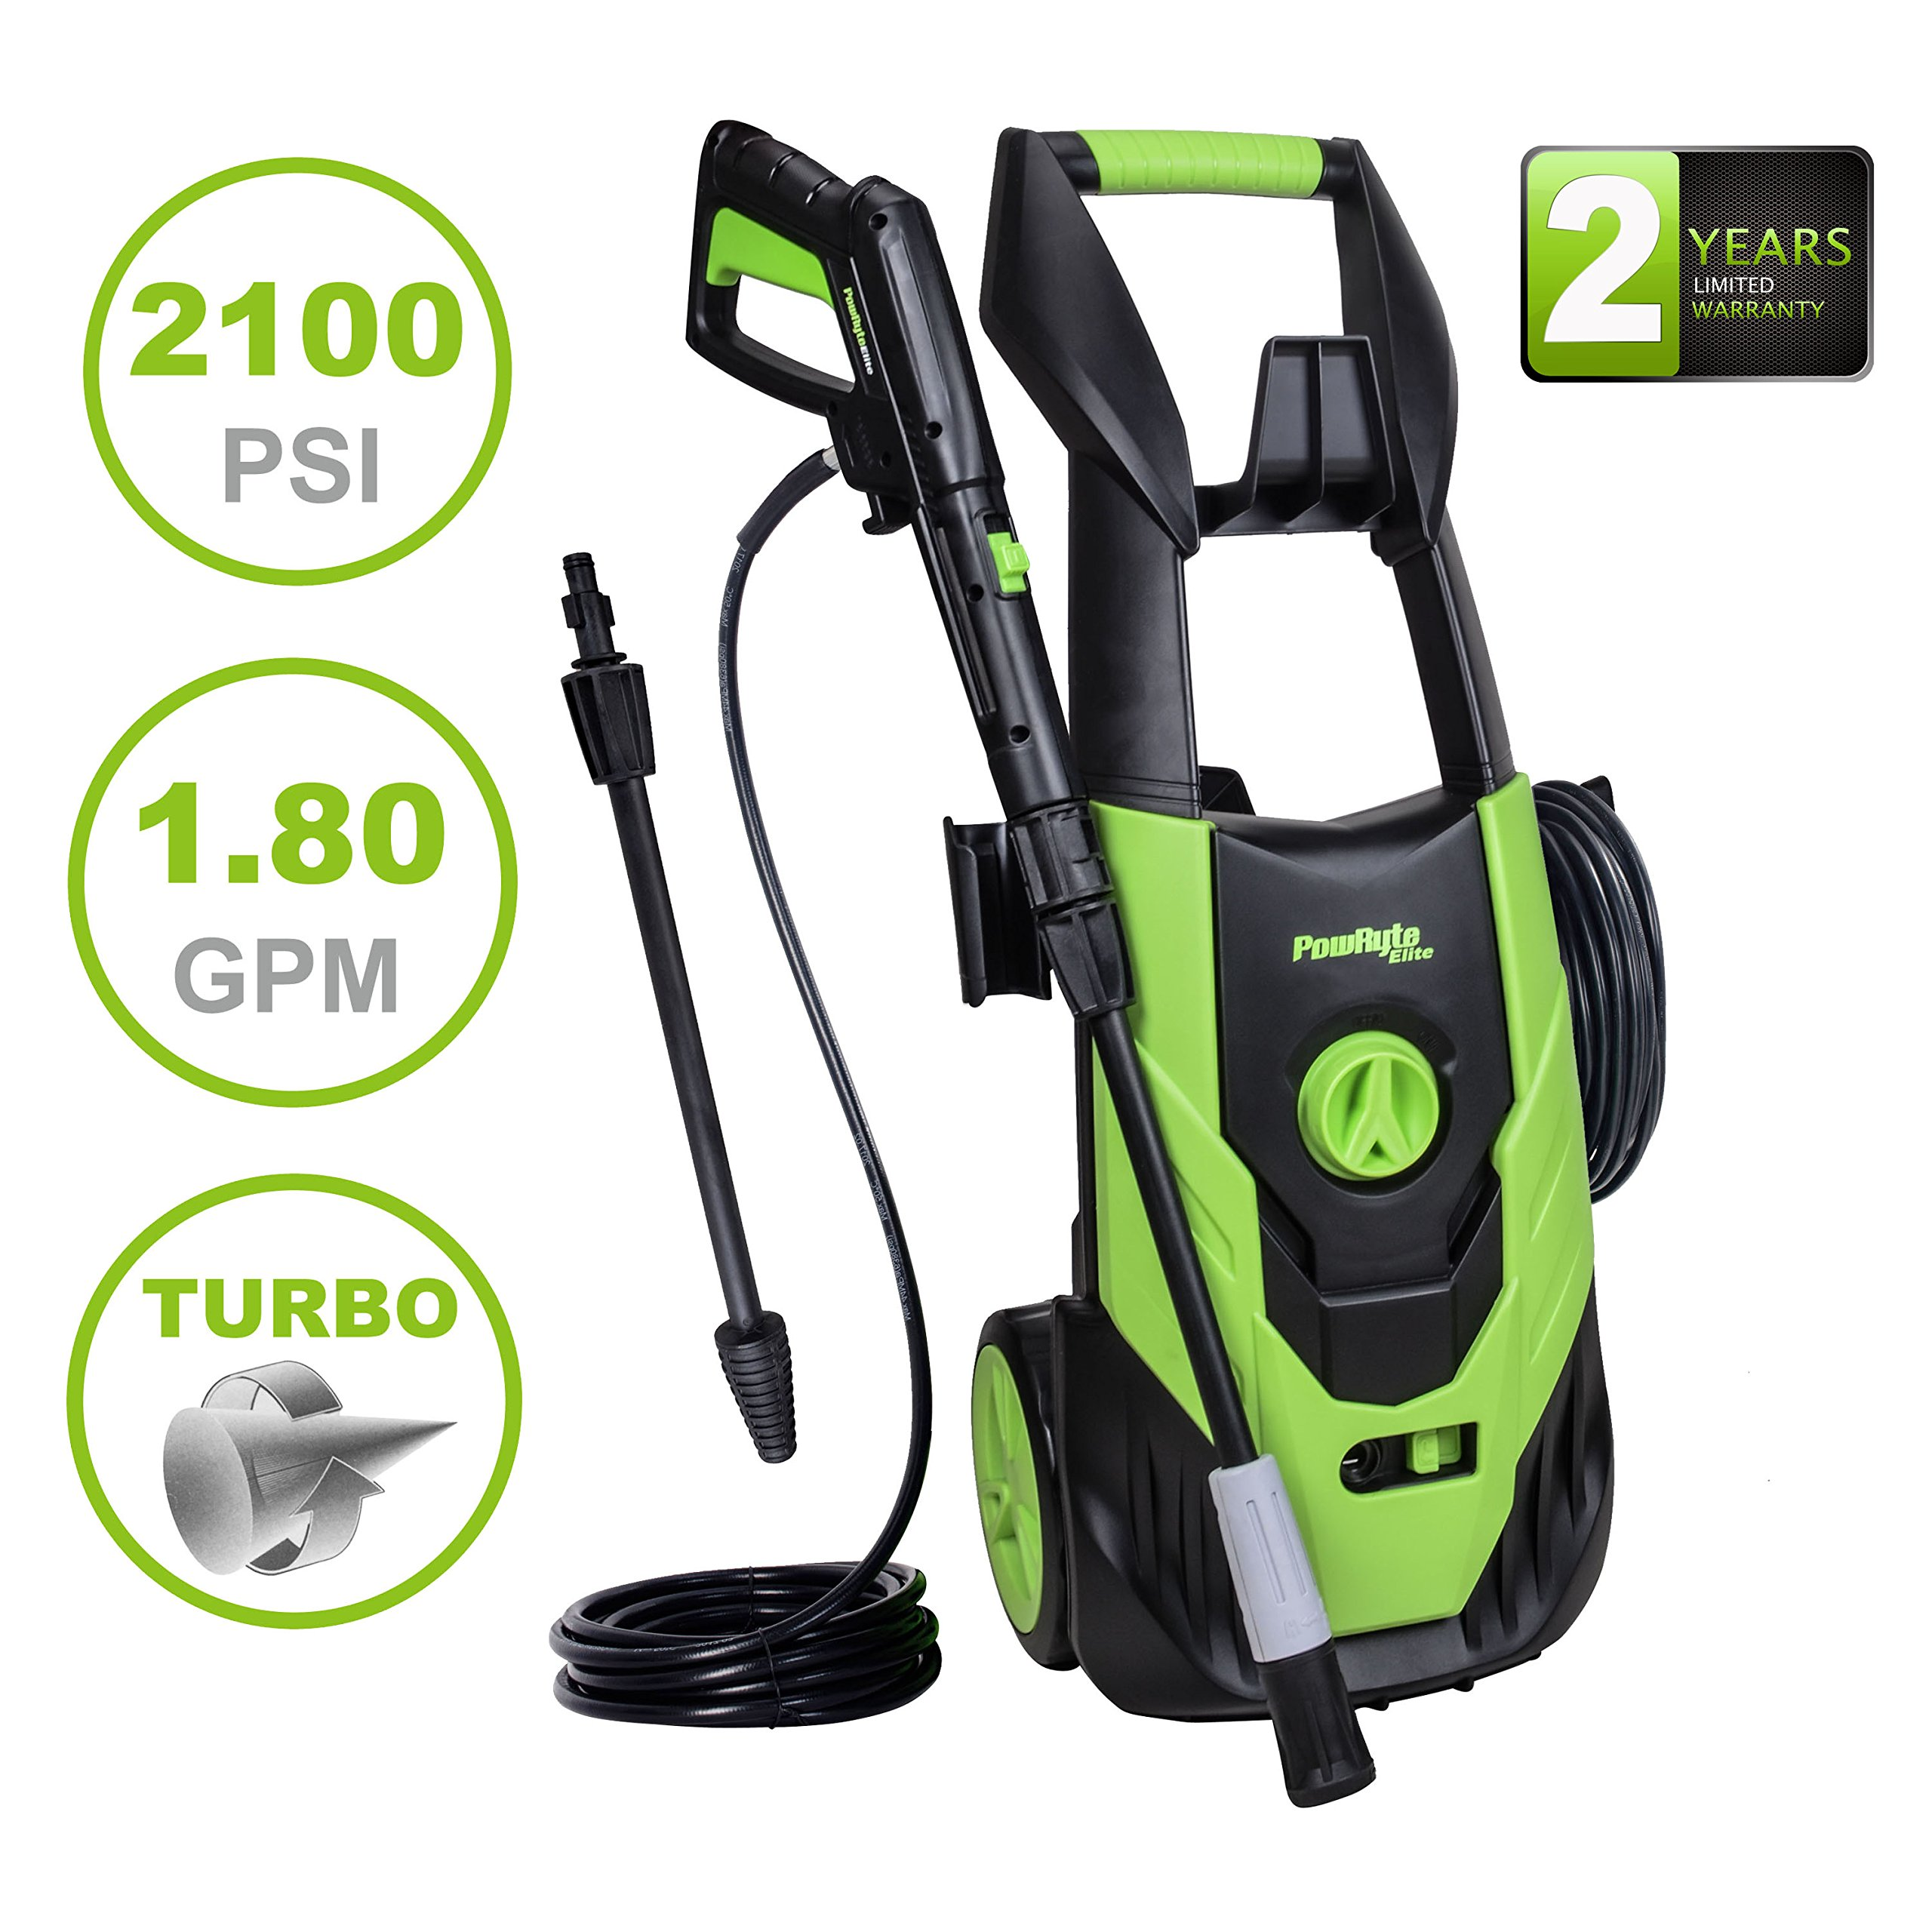 PowRyte Elite 2100PSI 1.8GPM Electric Pressure Washer with Adjustable Spray Nozzle, Extra Turbo Nozzle, Onboard Detergent Tank